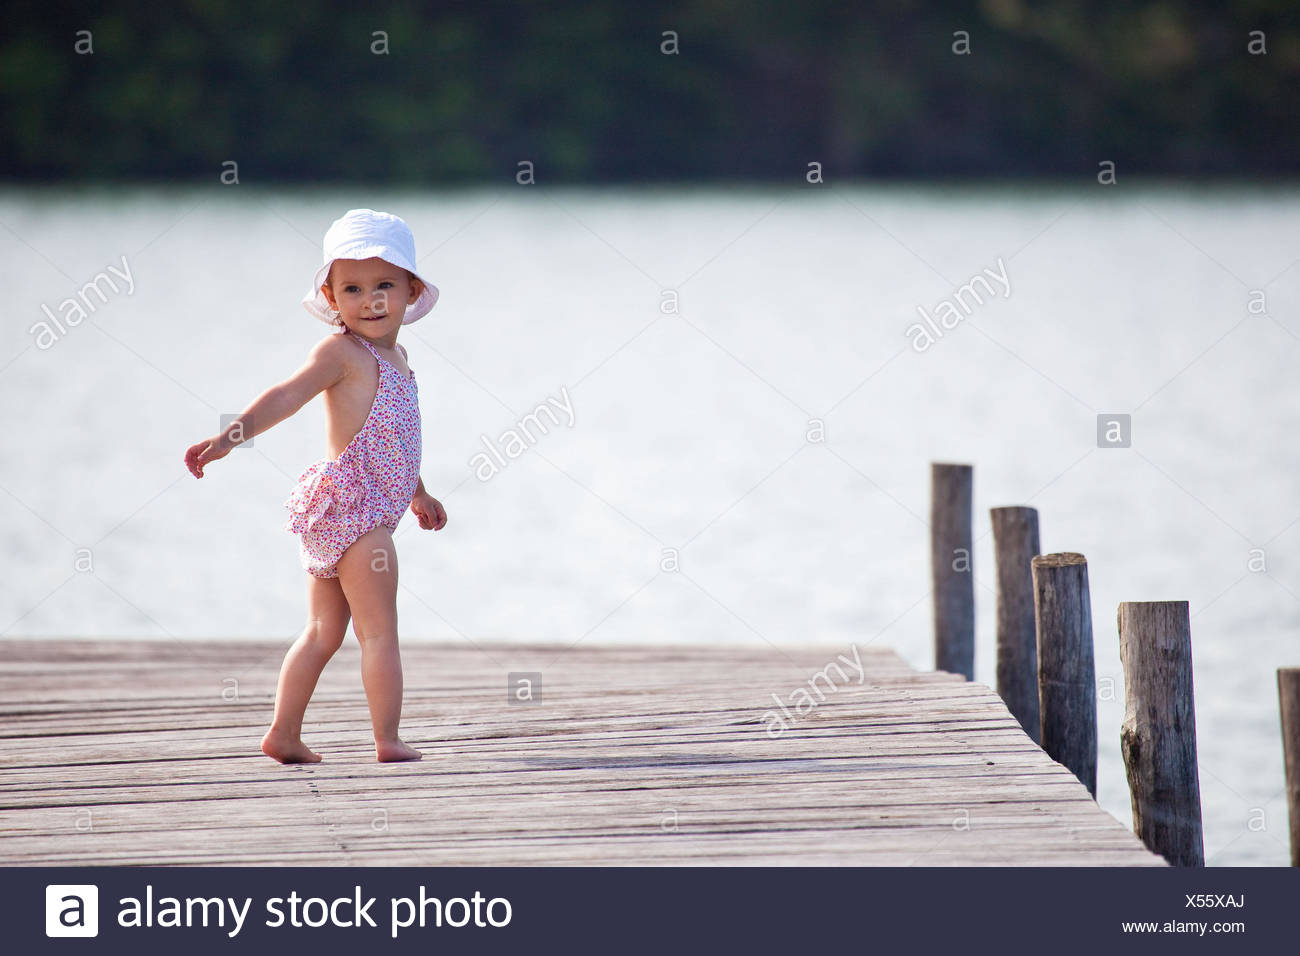 20 month old baby girl. - Stock Image